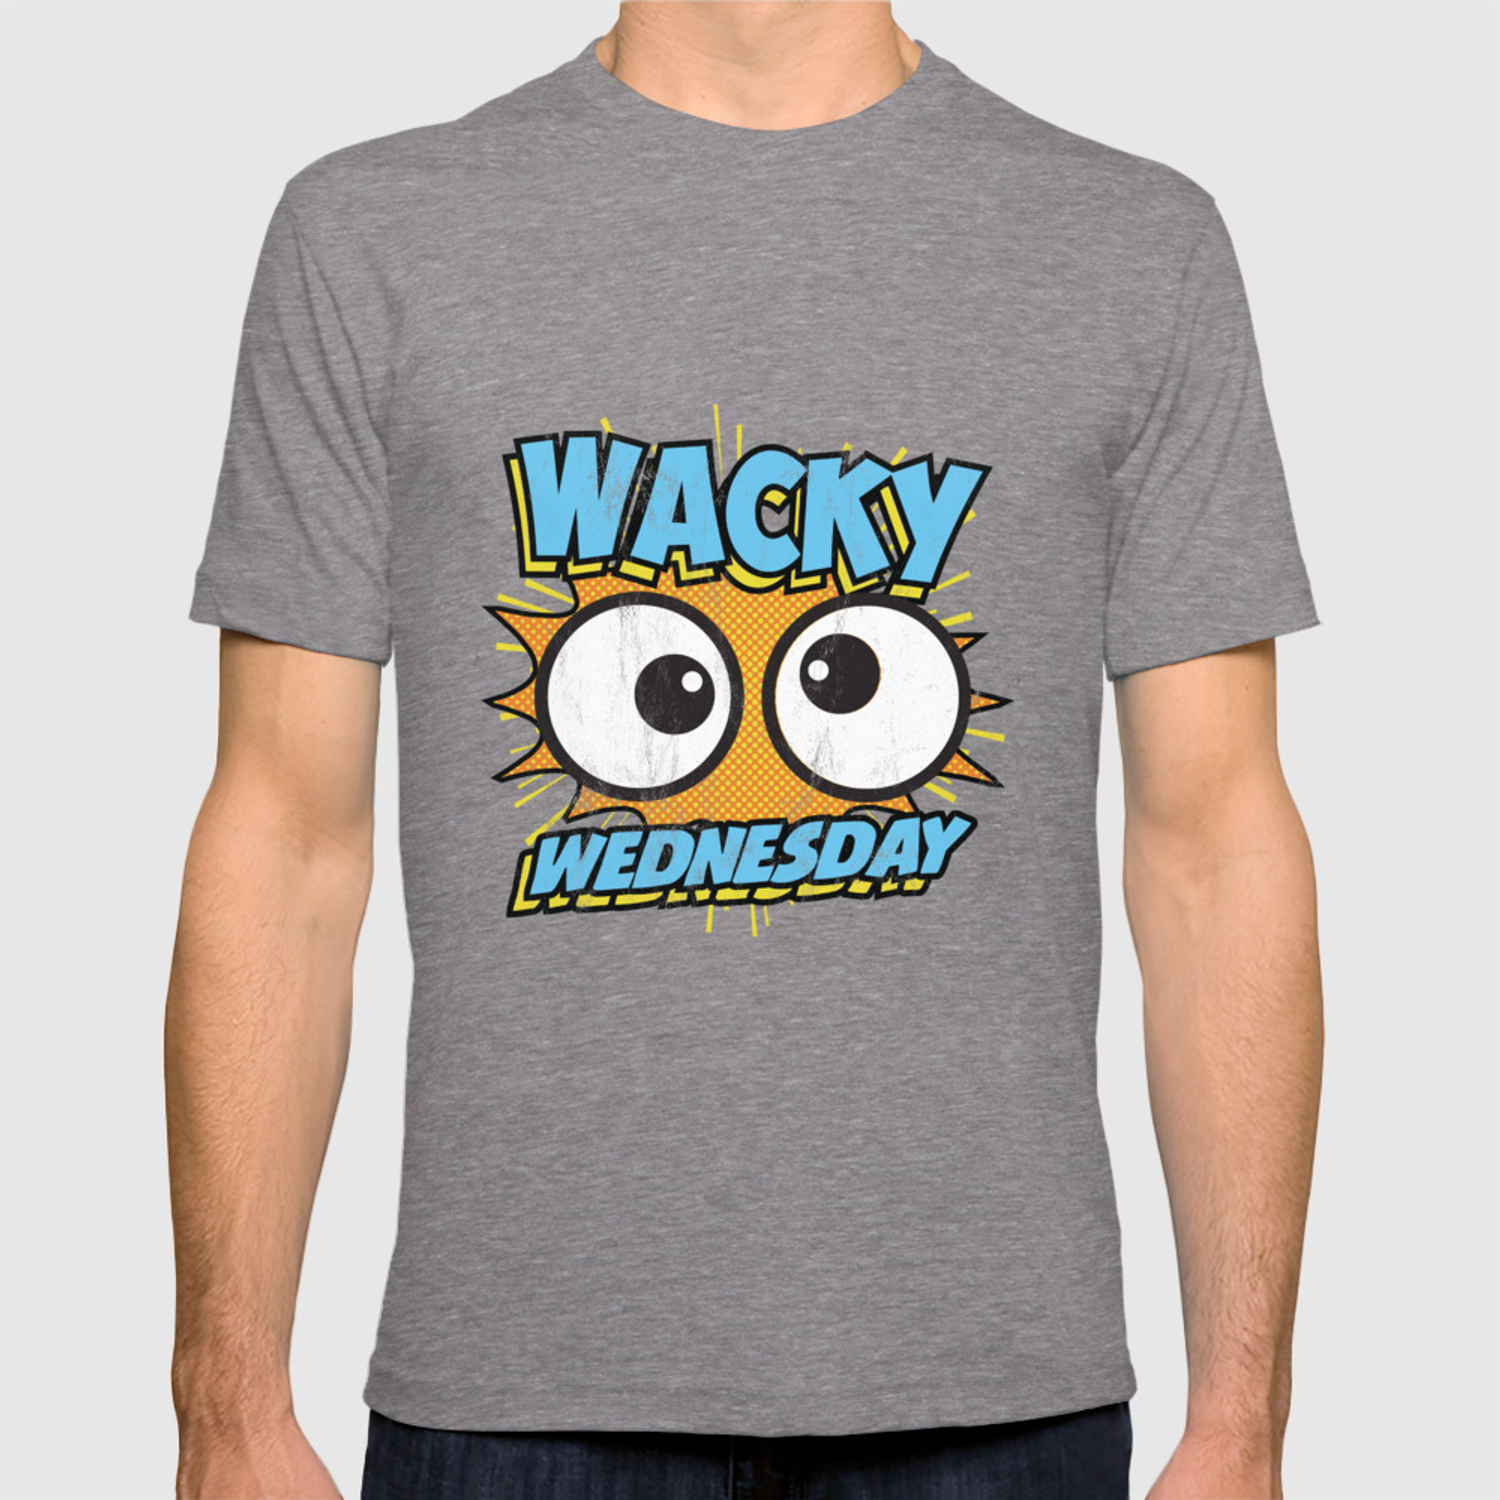 9c04cfd7e2b6 Wacky Wednesday Googly Eyes Silly Tshirt Comic Style Kids T-shirt by noirty    Society6